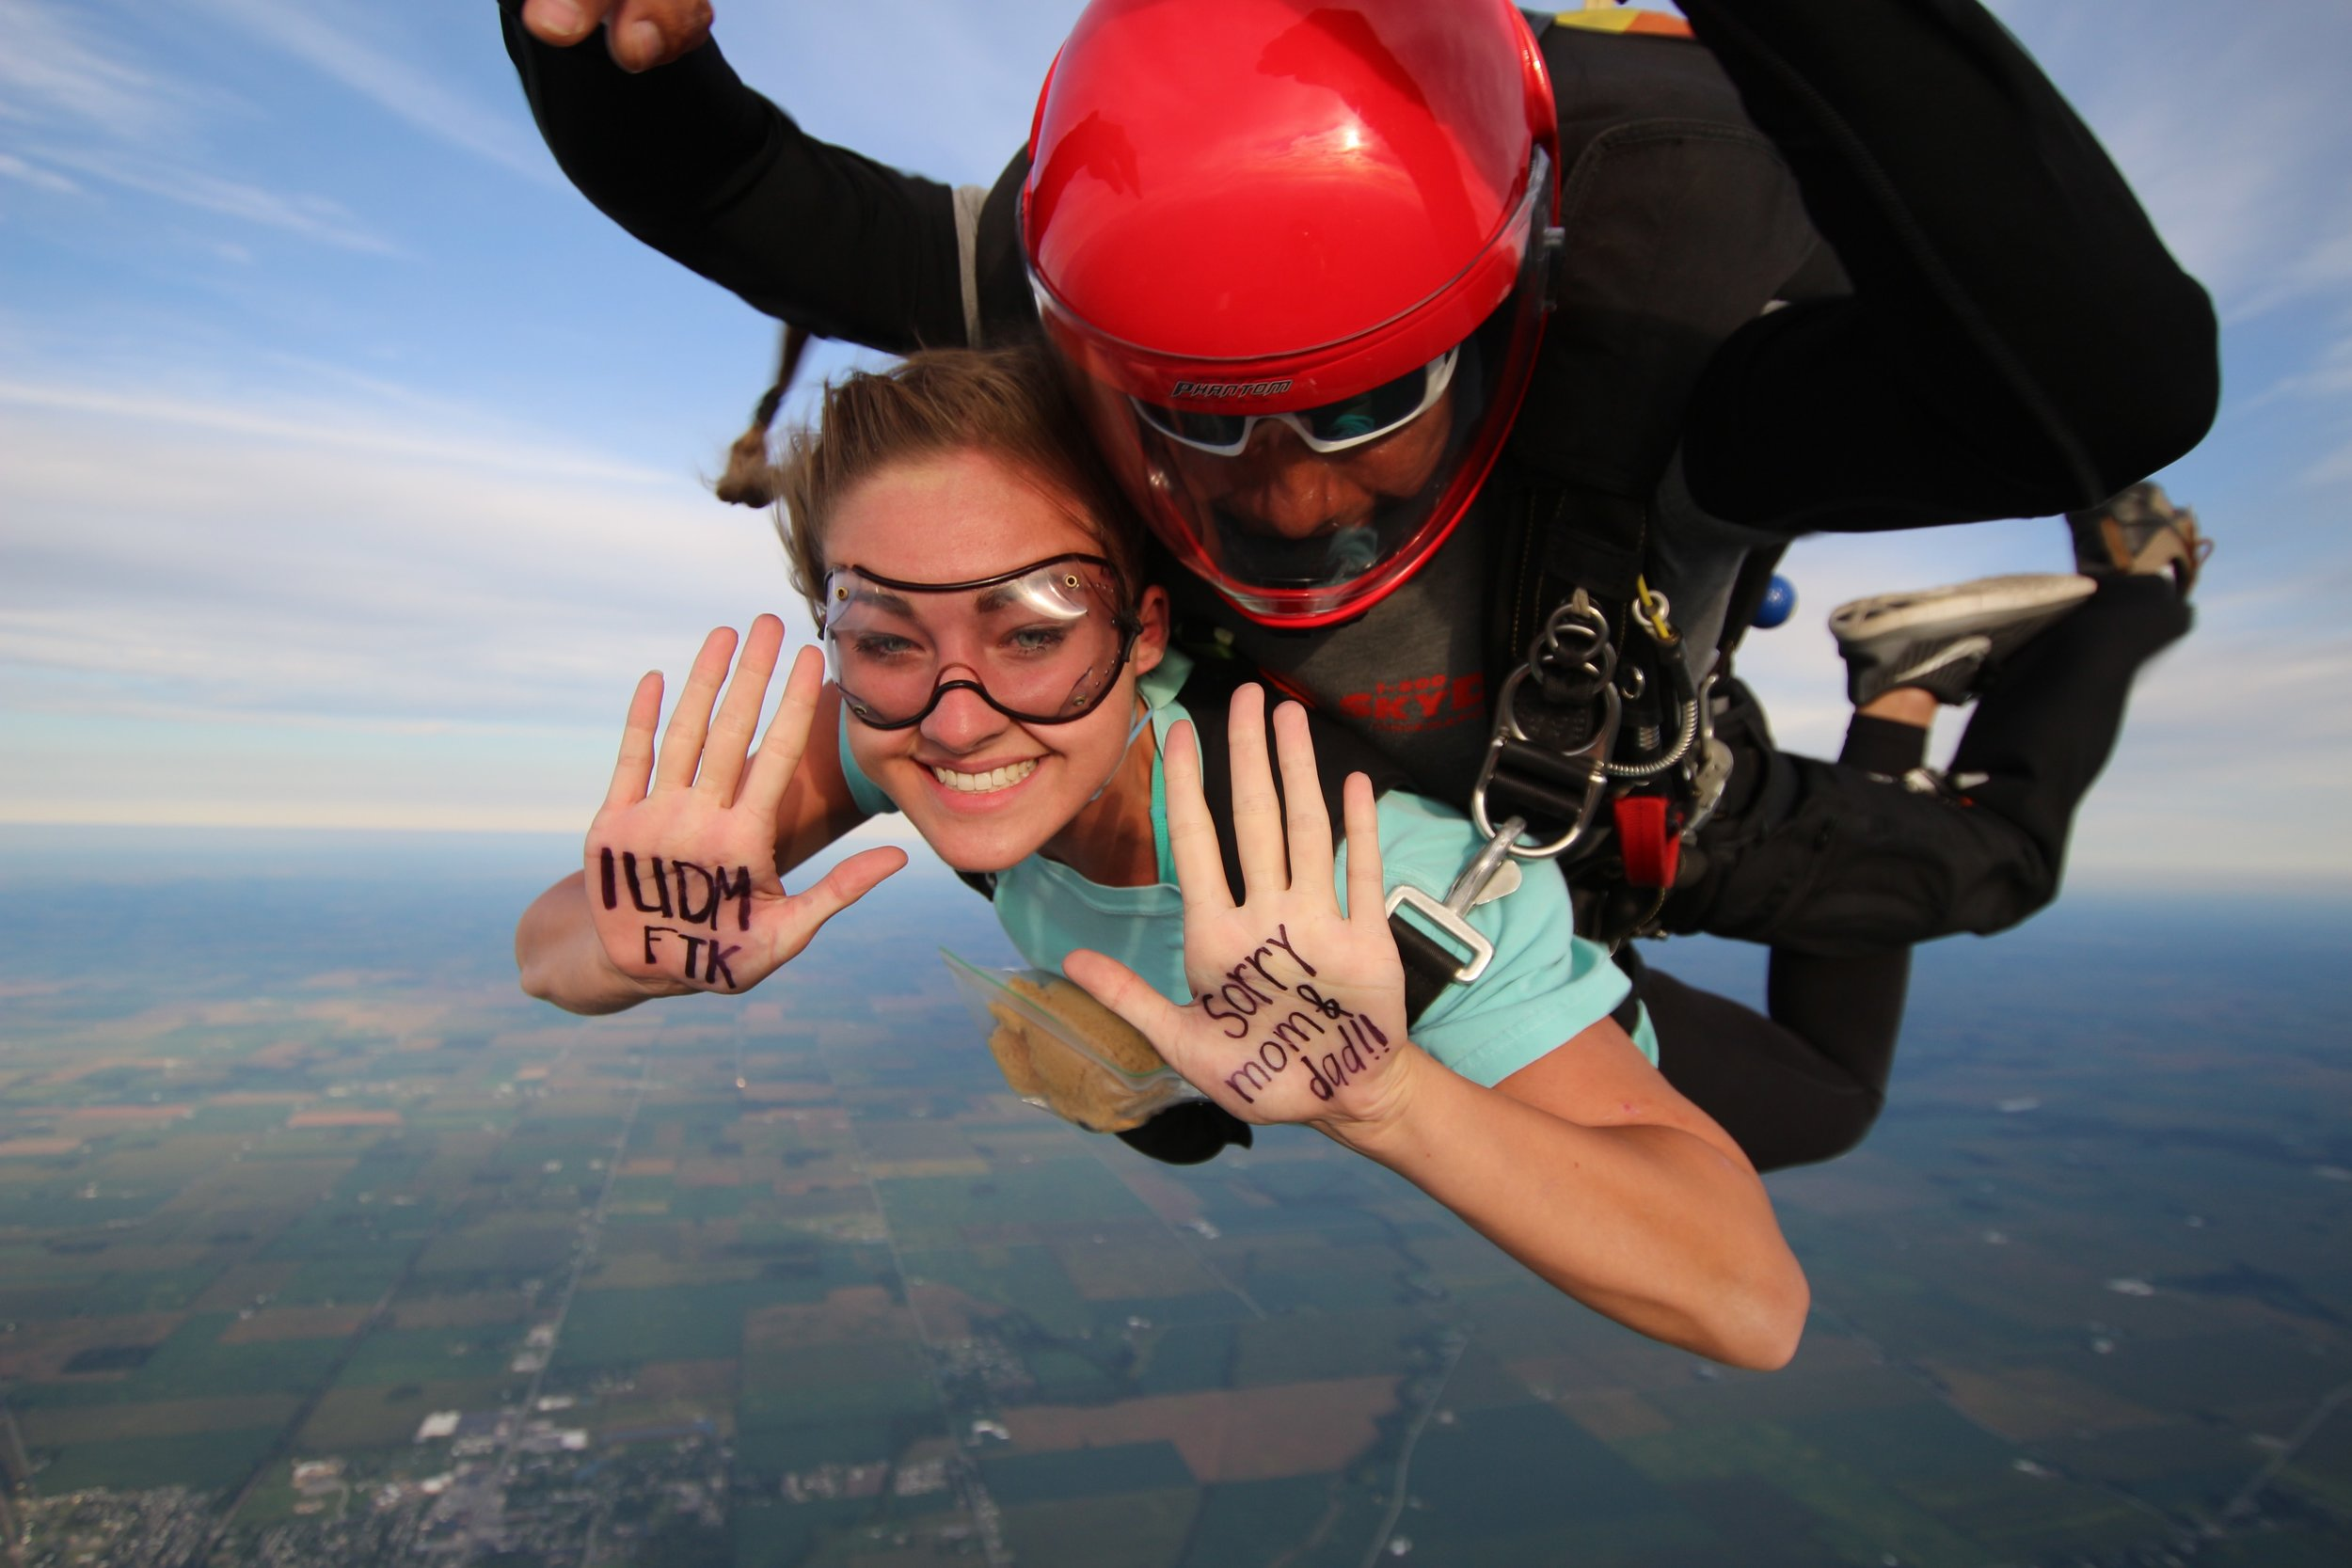 IUDM Skydiving for good